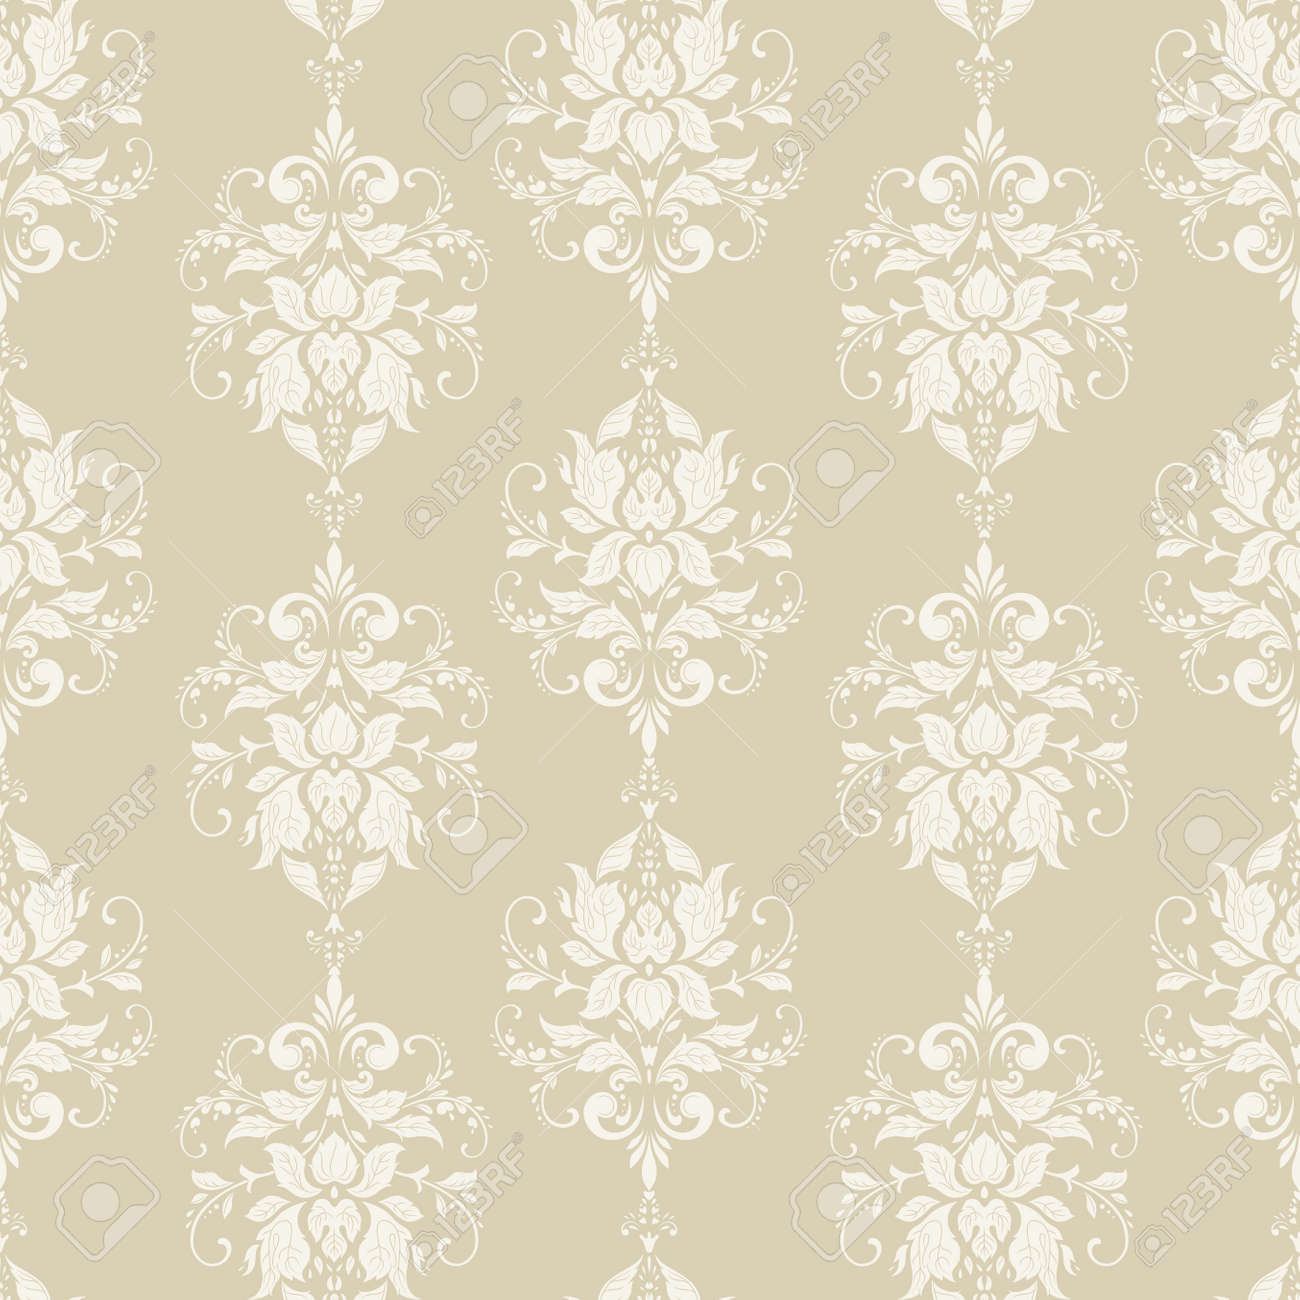 Vector floral wallpaper. Classic Baroque floral ornament. Seamless vintage pattern - 122714045